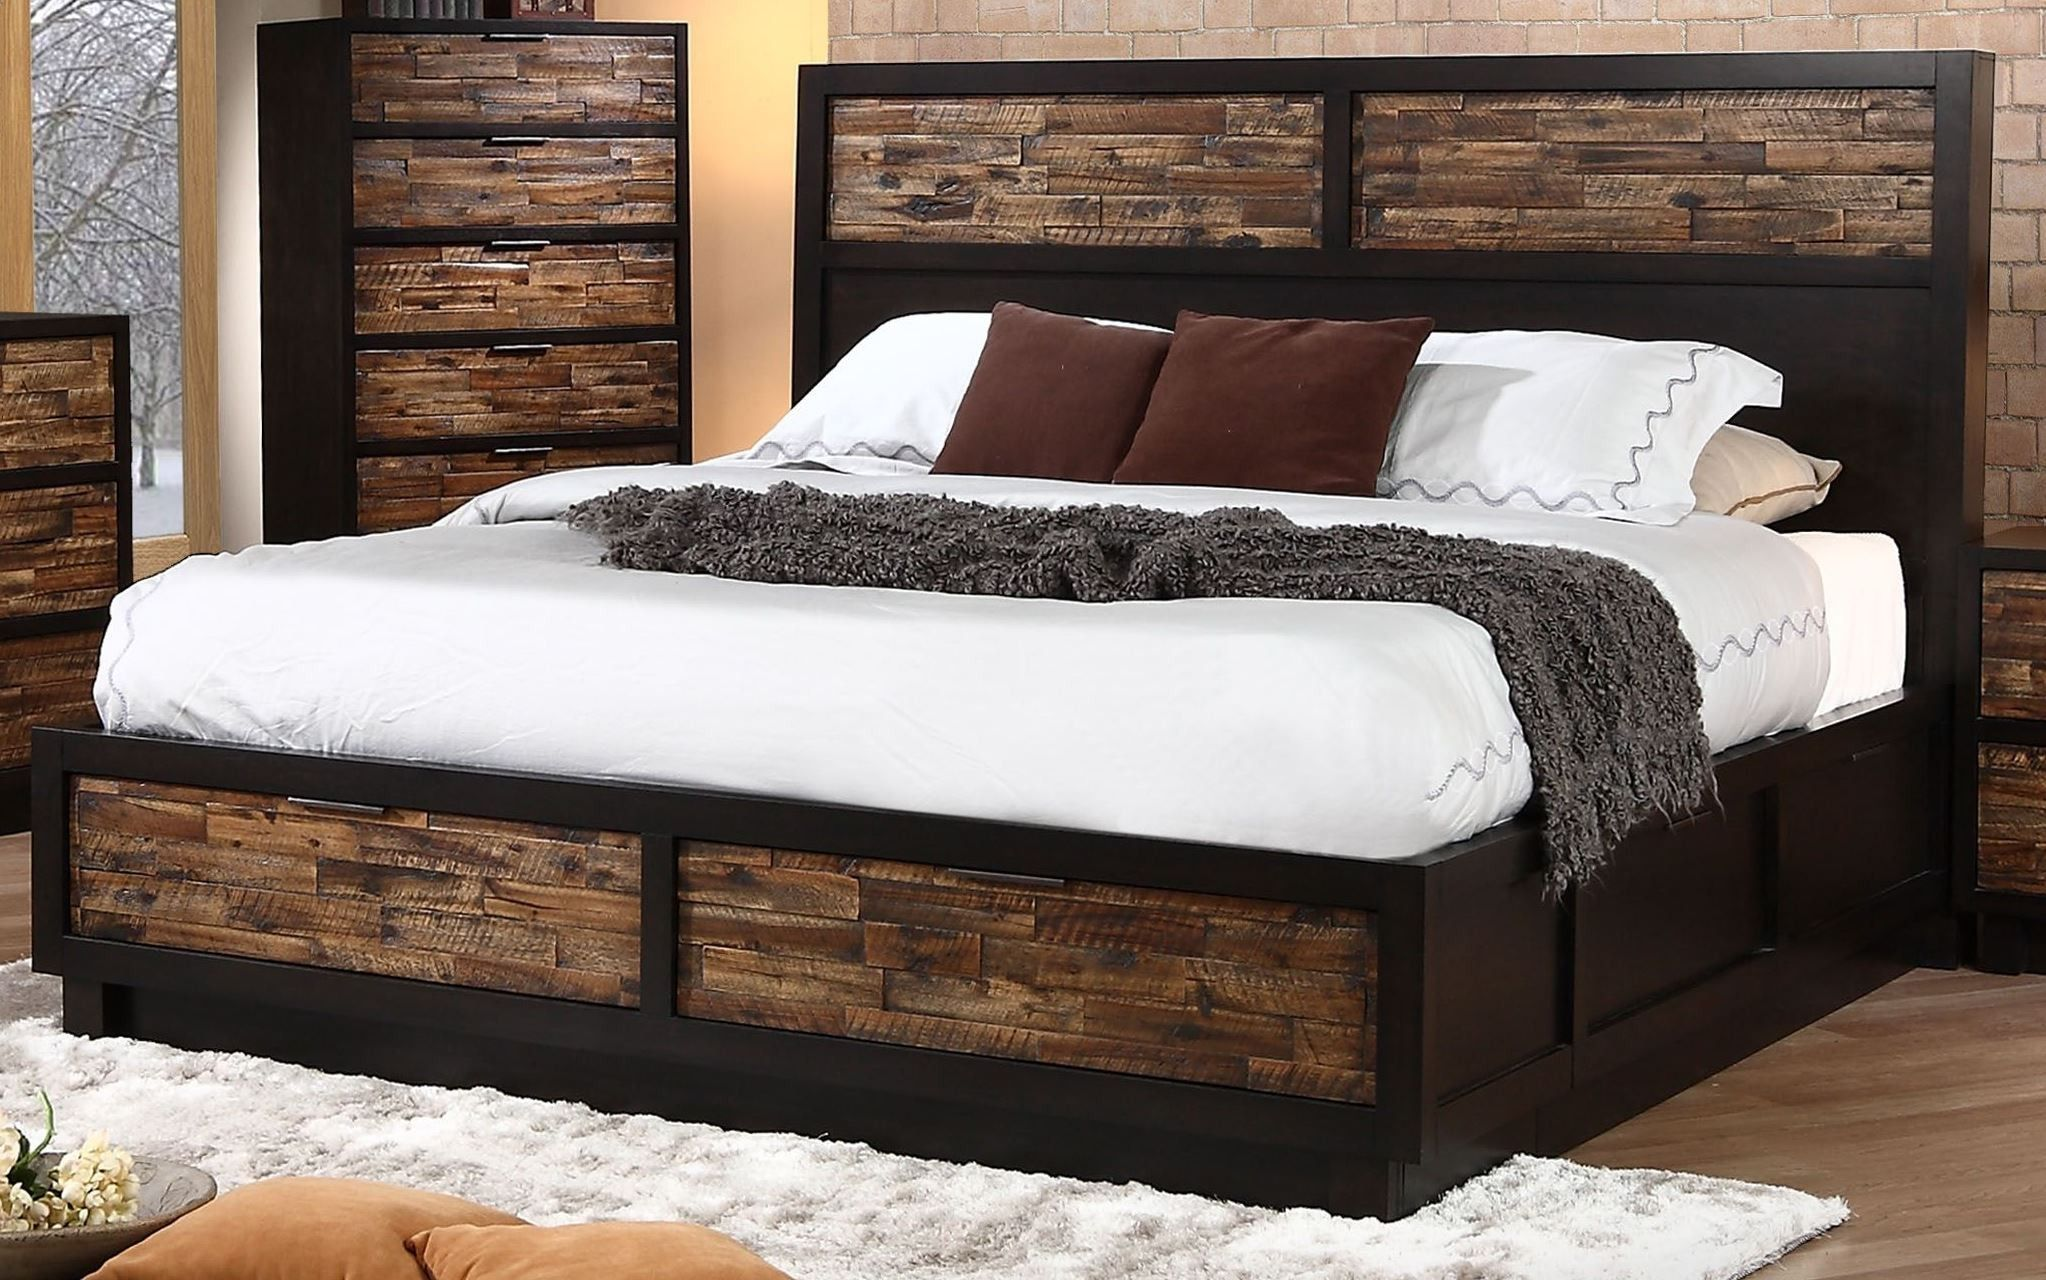 Makeeda Rustic Cal King Platform Storage Bed